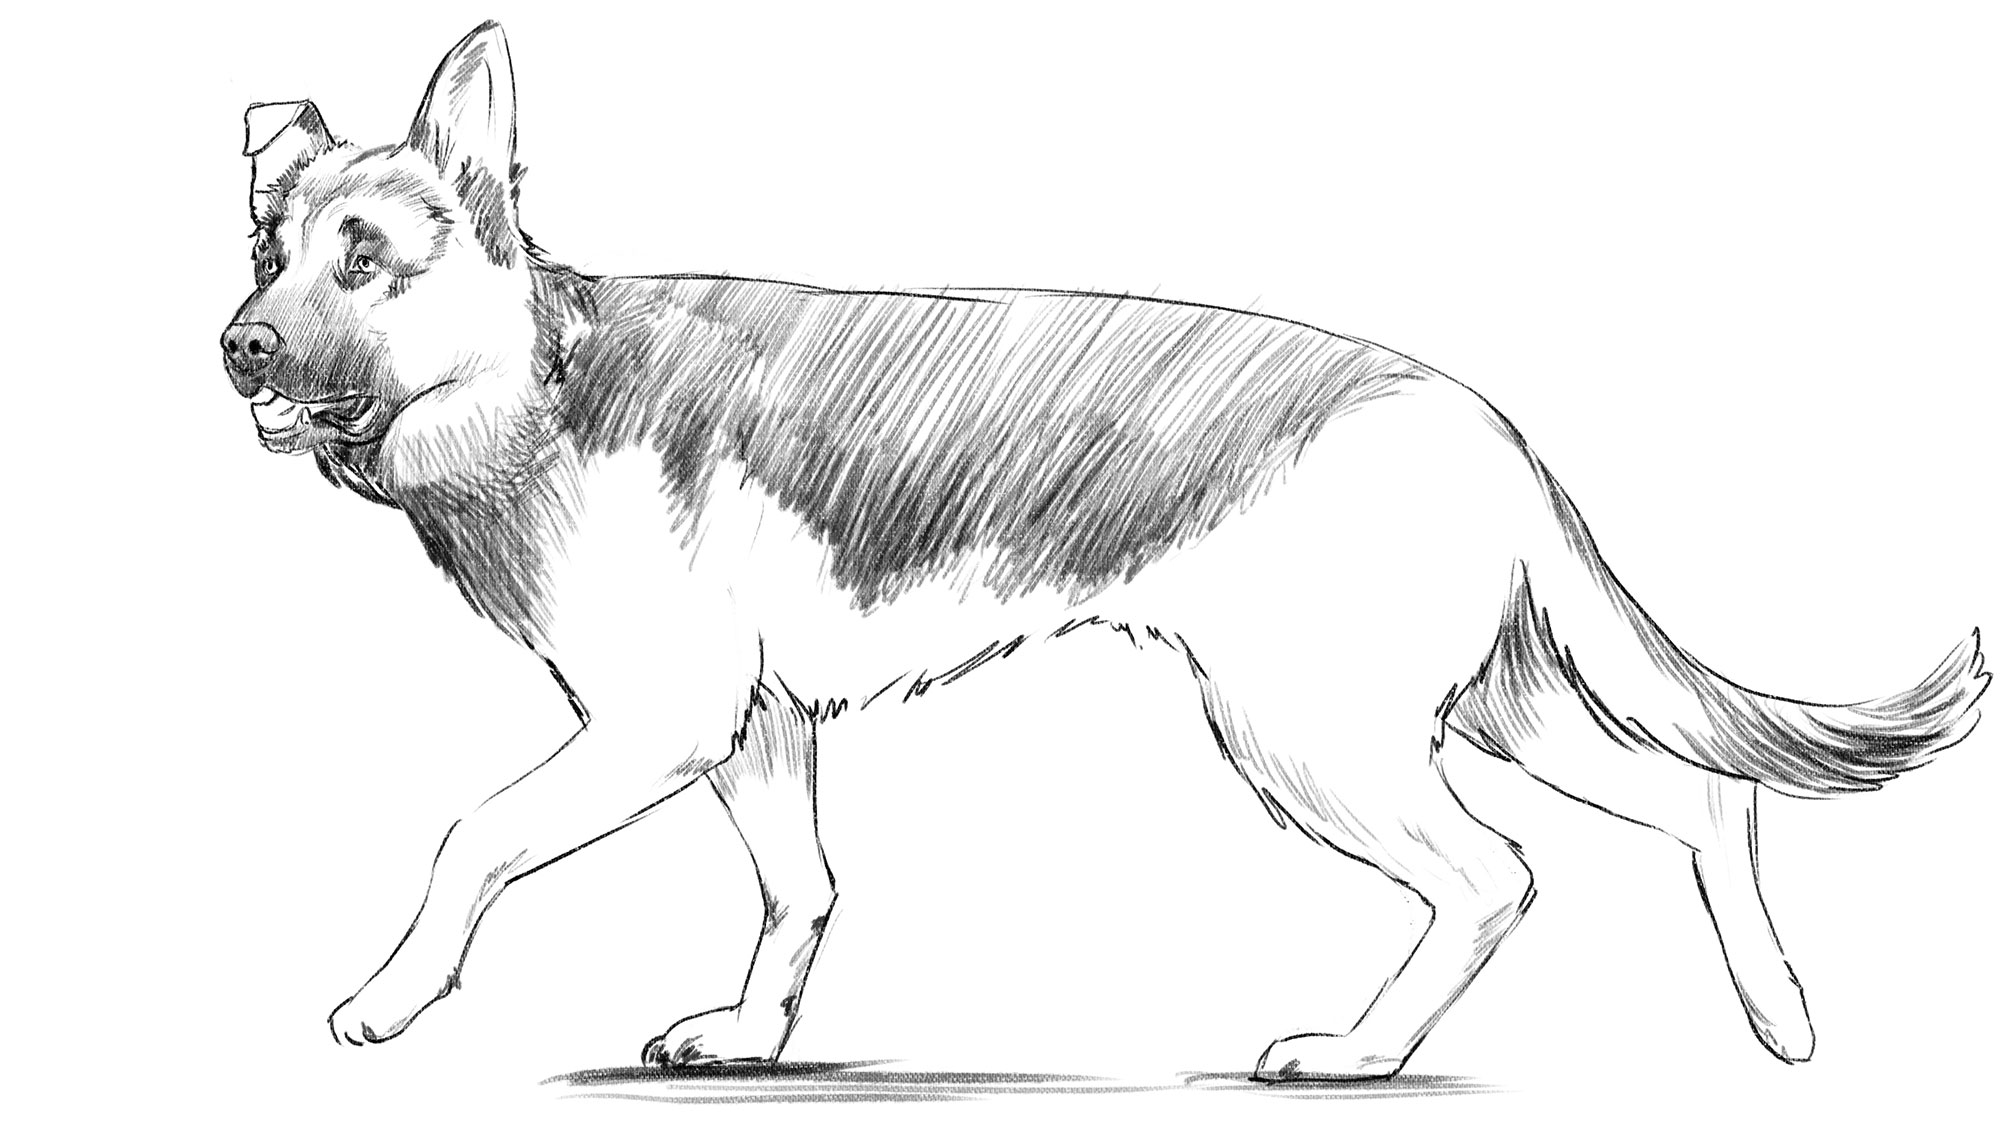 How to draw a dog | Creative Bloq